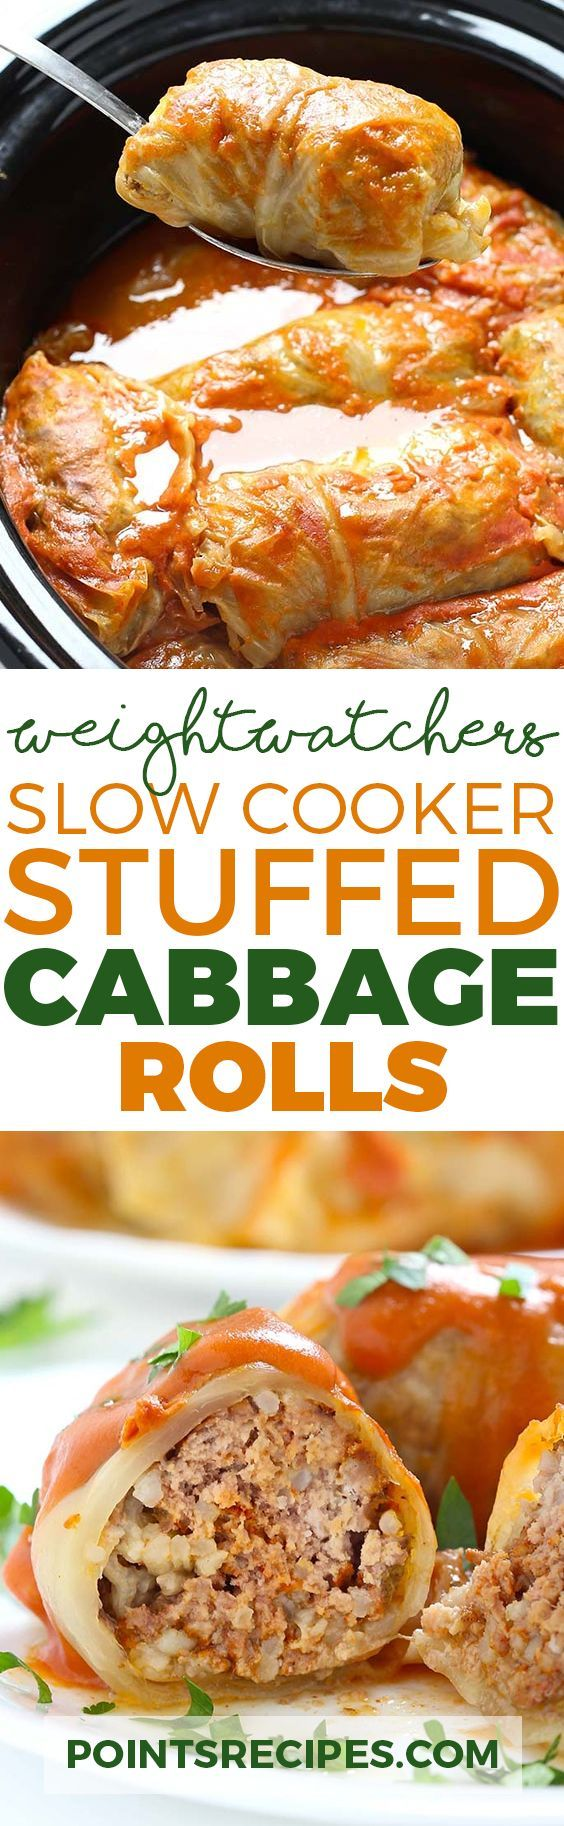 how to cook cabbage for stuffed cabbage rolls